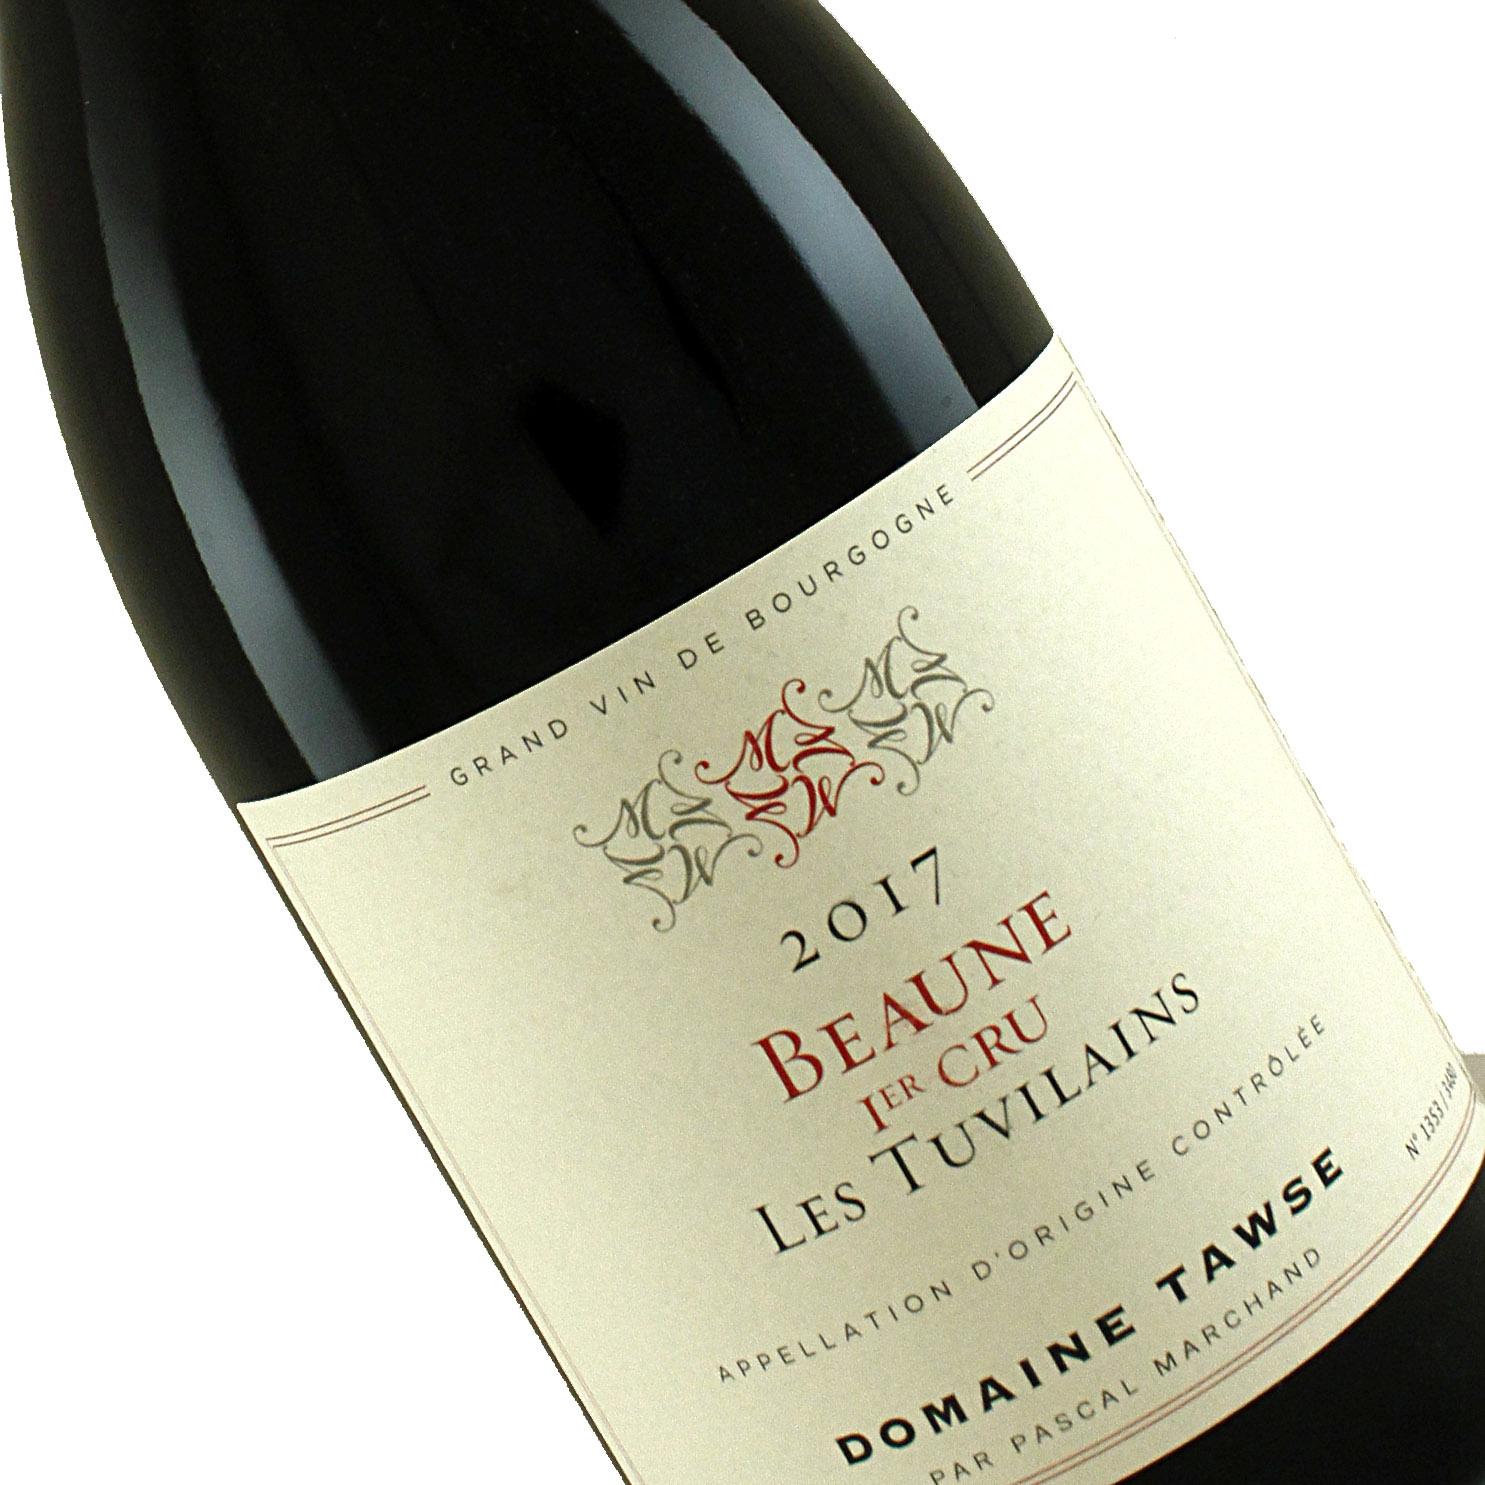 Marchand-Tawse 2017 Beaune Tuvilains Premier Cru, Burgundy, France